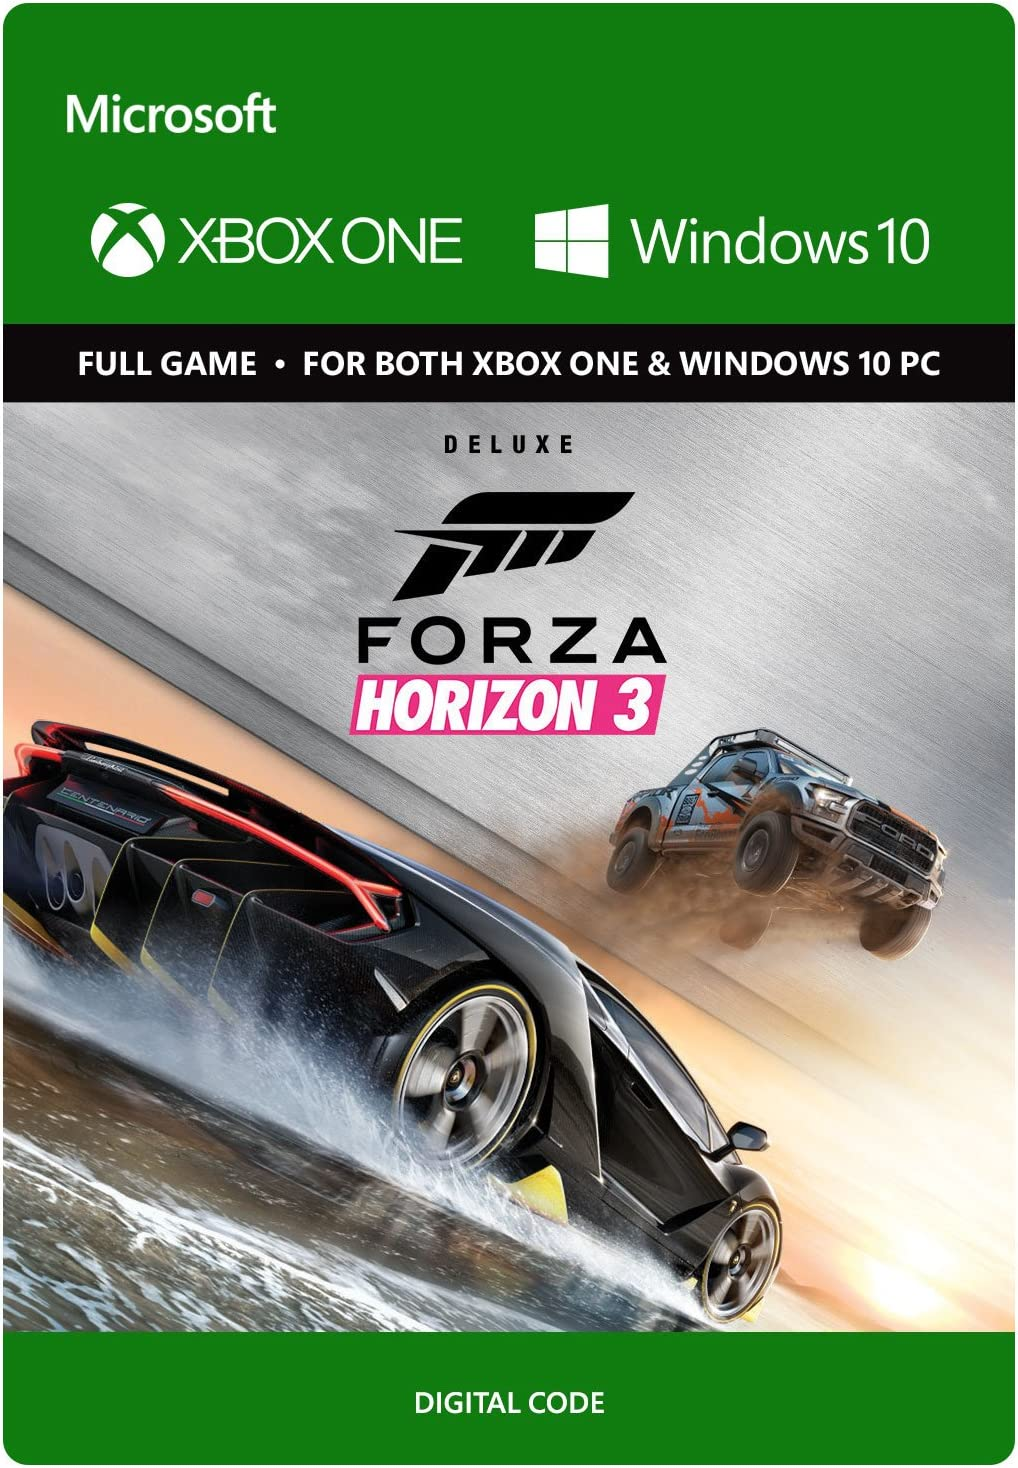 Amazon forza horizon 3 deluxe edition xbox one windows 10 amazon forza horizon 3 deluxe edition xbox one windows 10 digital code video games malvernweather Image collections